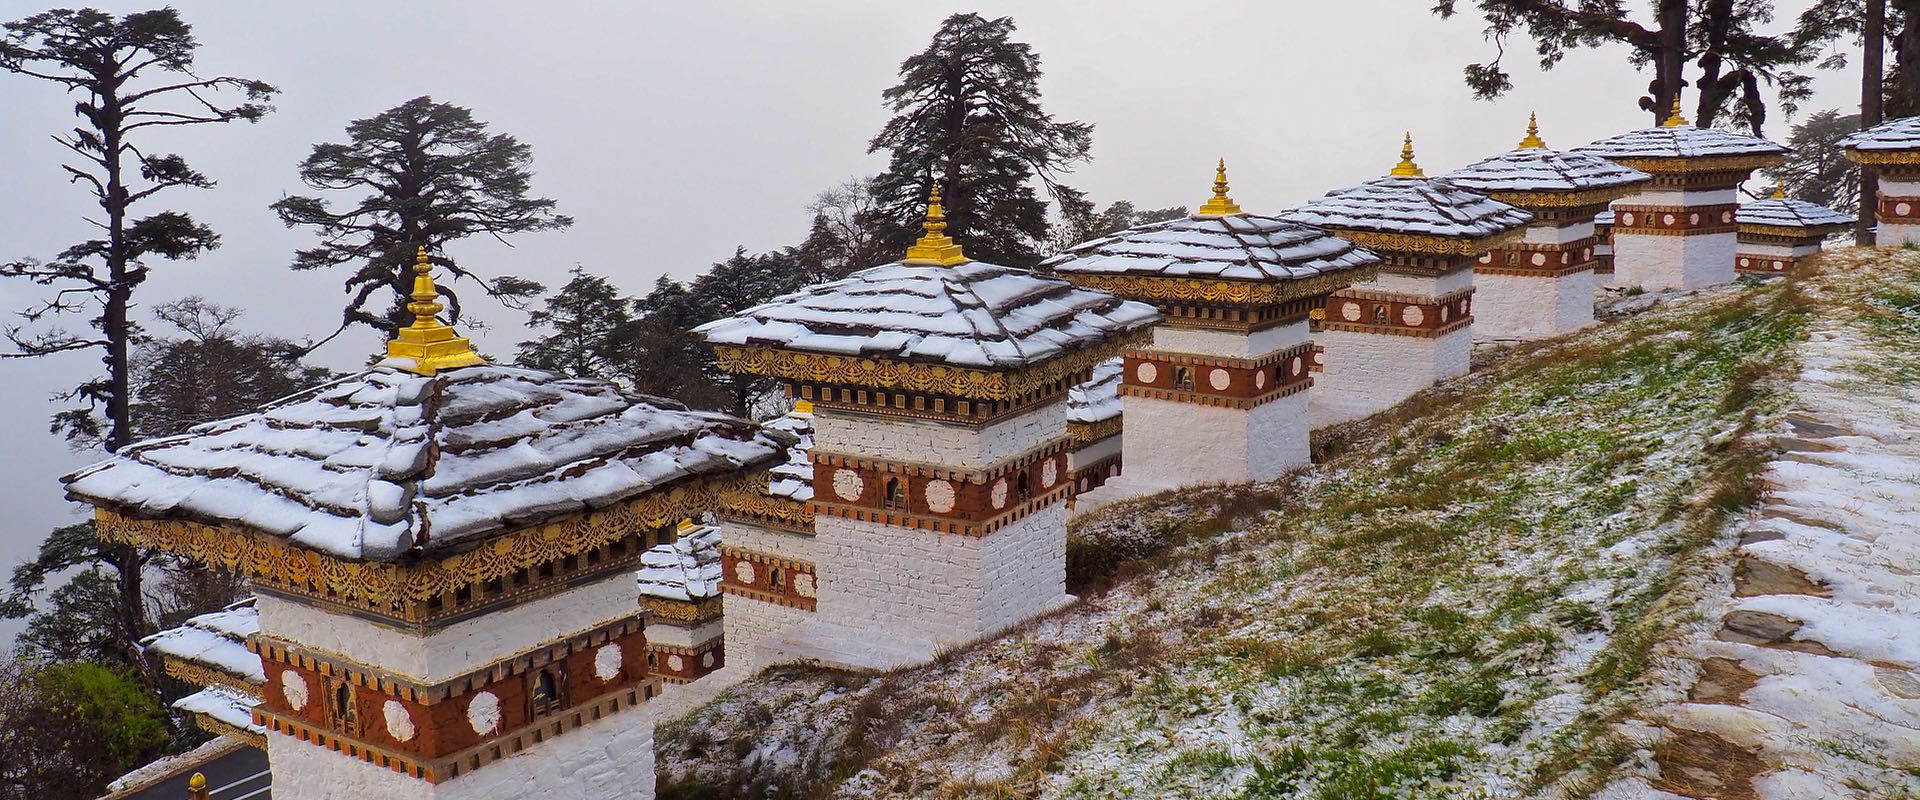 private bhutan tours, custom tours bhutan, private tours bhutan, luxury tours bhutan